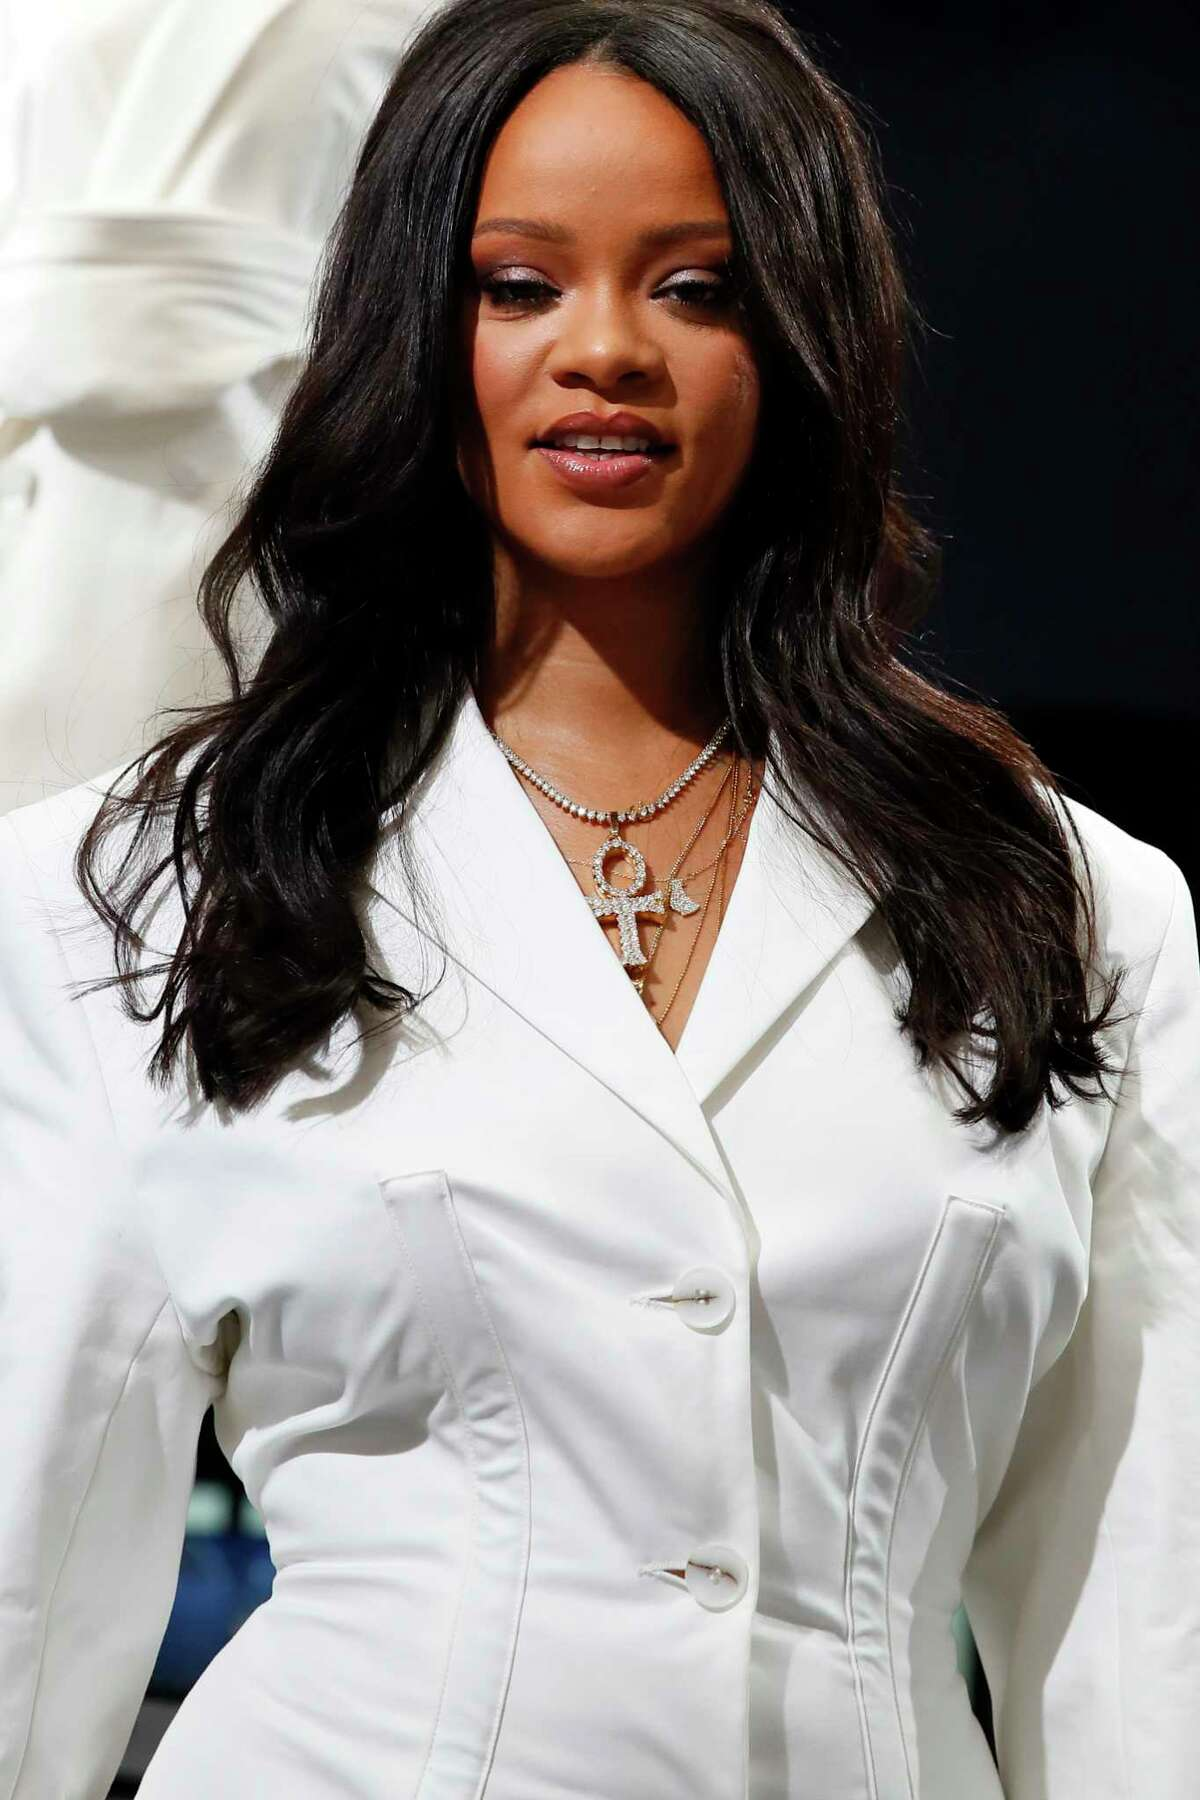 Rihanna poses as she unveils her first fashion designs for Fenty at a pop-up store in Paris, France, Wednesday, May 22, 2019. Singer Rihanna is the first black woman in history to head up a major Parisian luxury house, and the collection, named after the singer turned designer's last name, comprises of ready-to-wear, footwear, accessories, and eyewear and is available for sale Paris' Le Marais area from Friday and will debut online May 29.